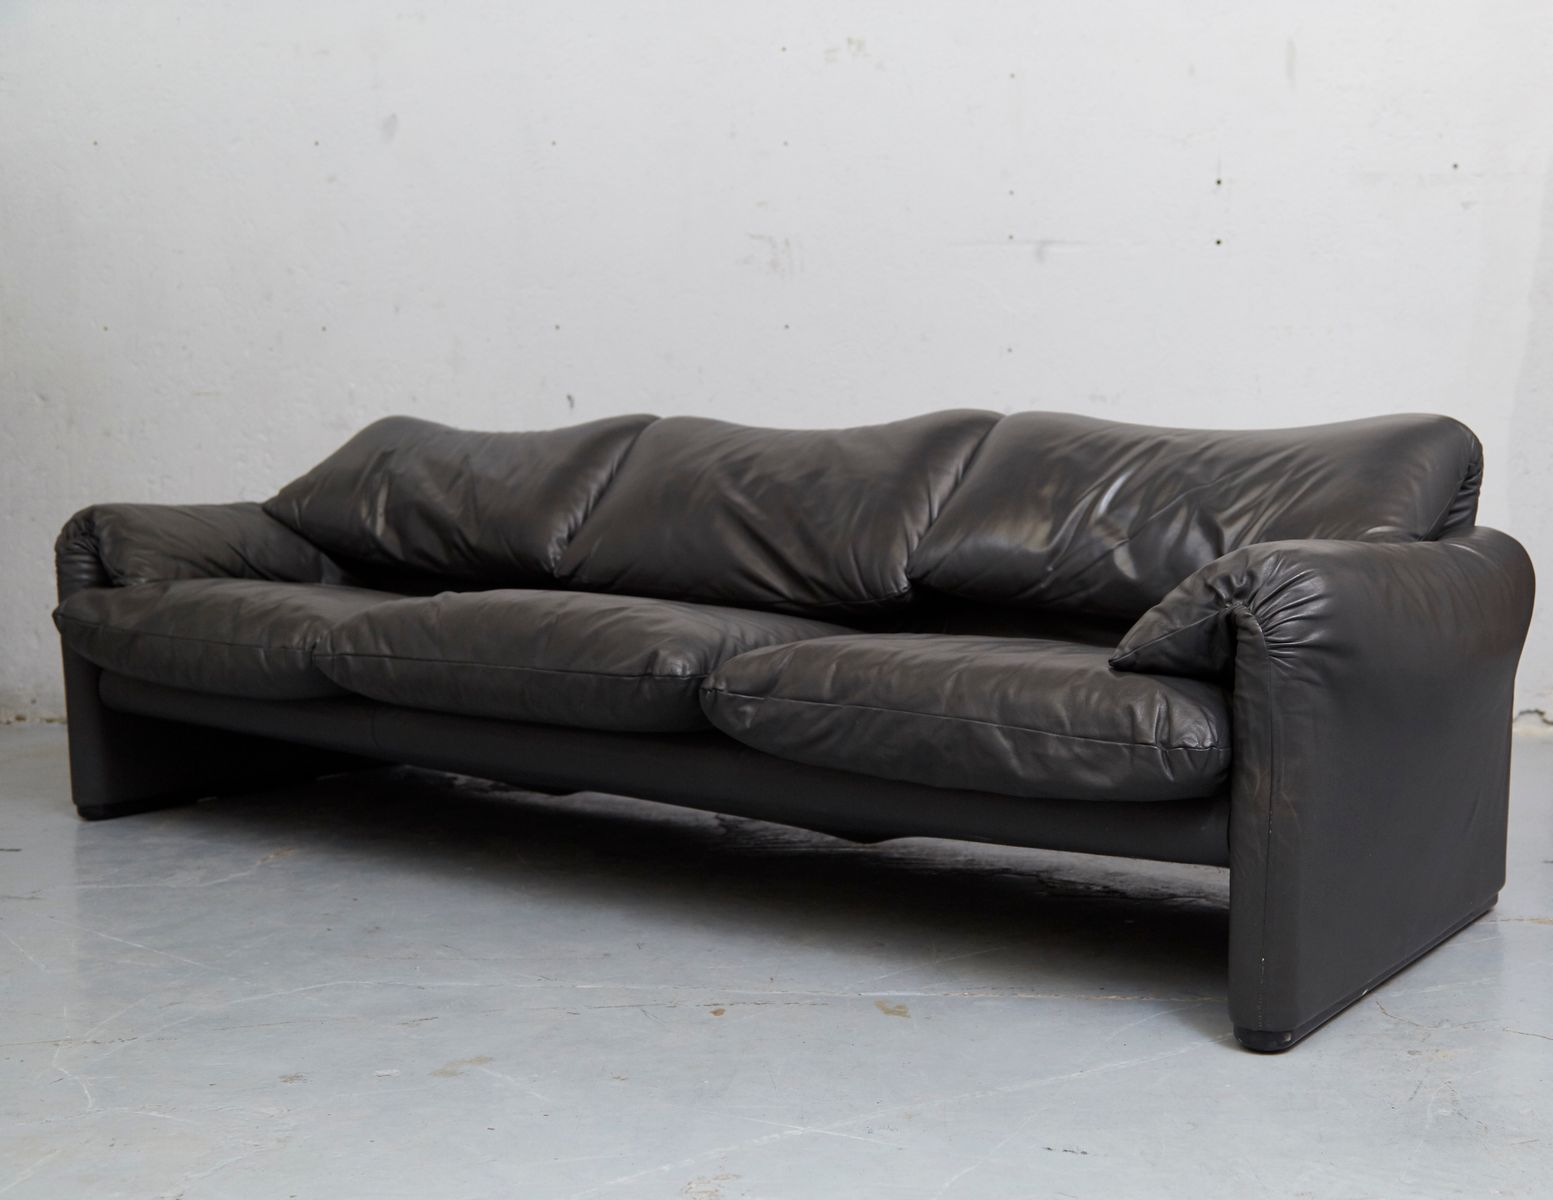 Vintage Maralunga Sofa By Vico Magistretti For Cassina